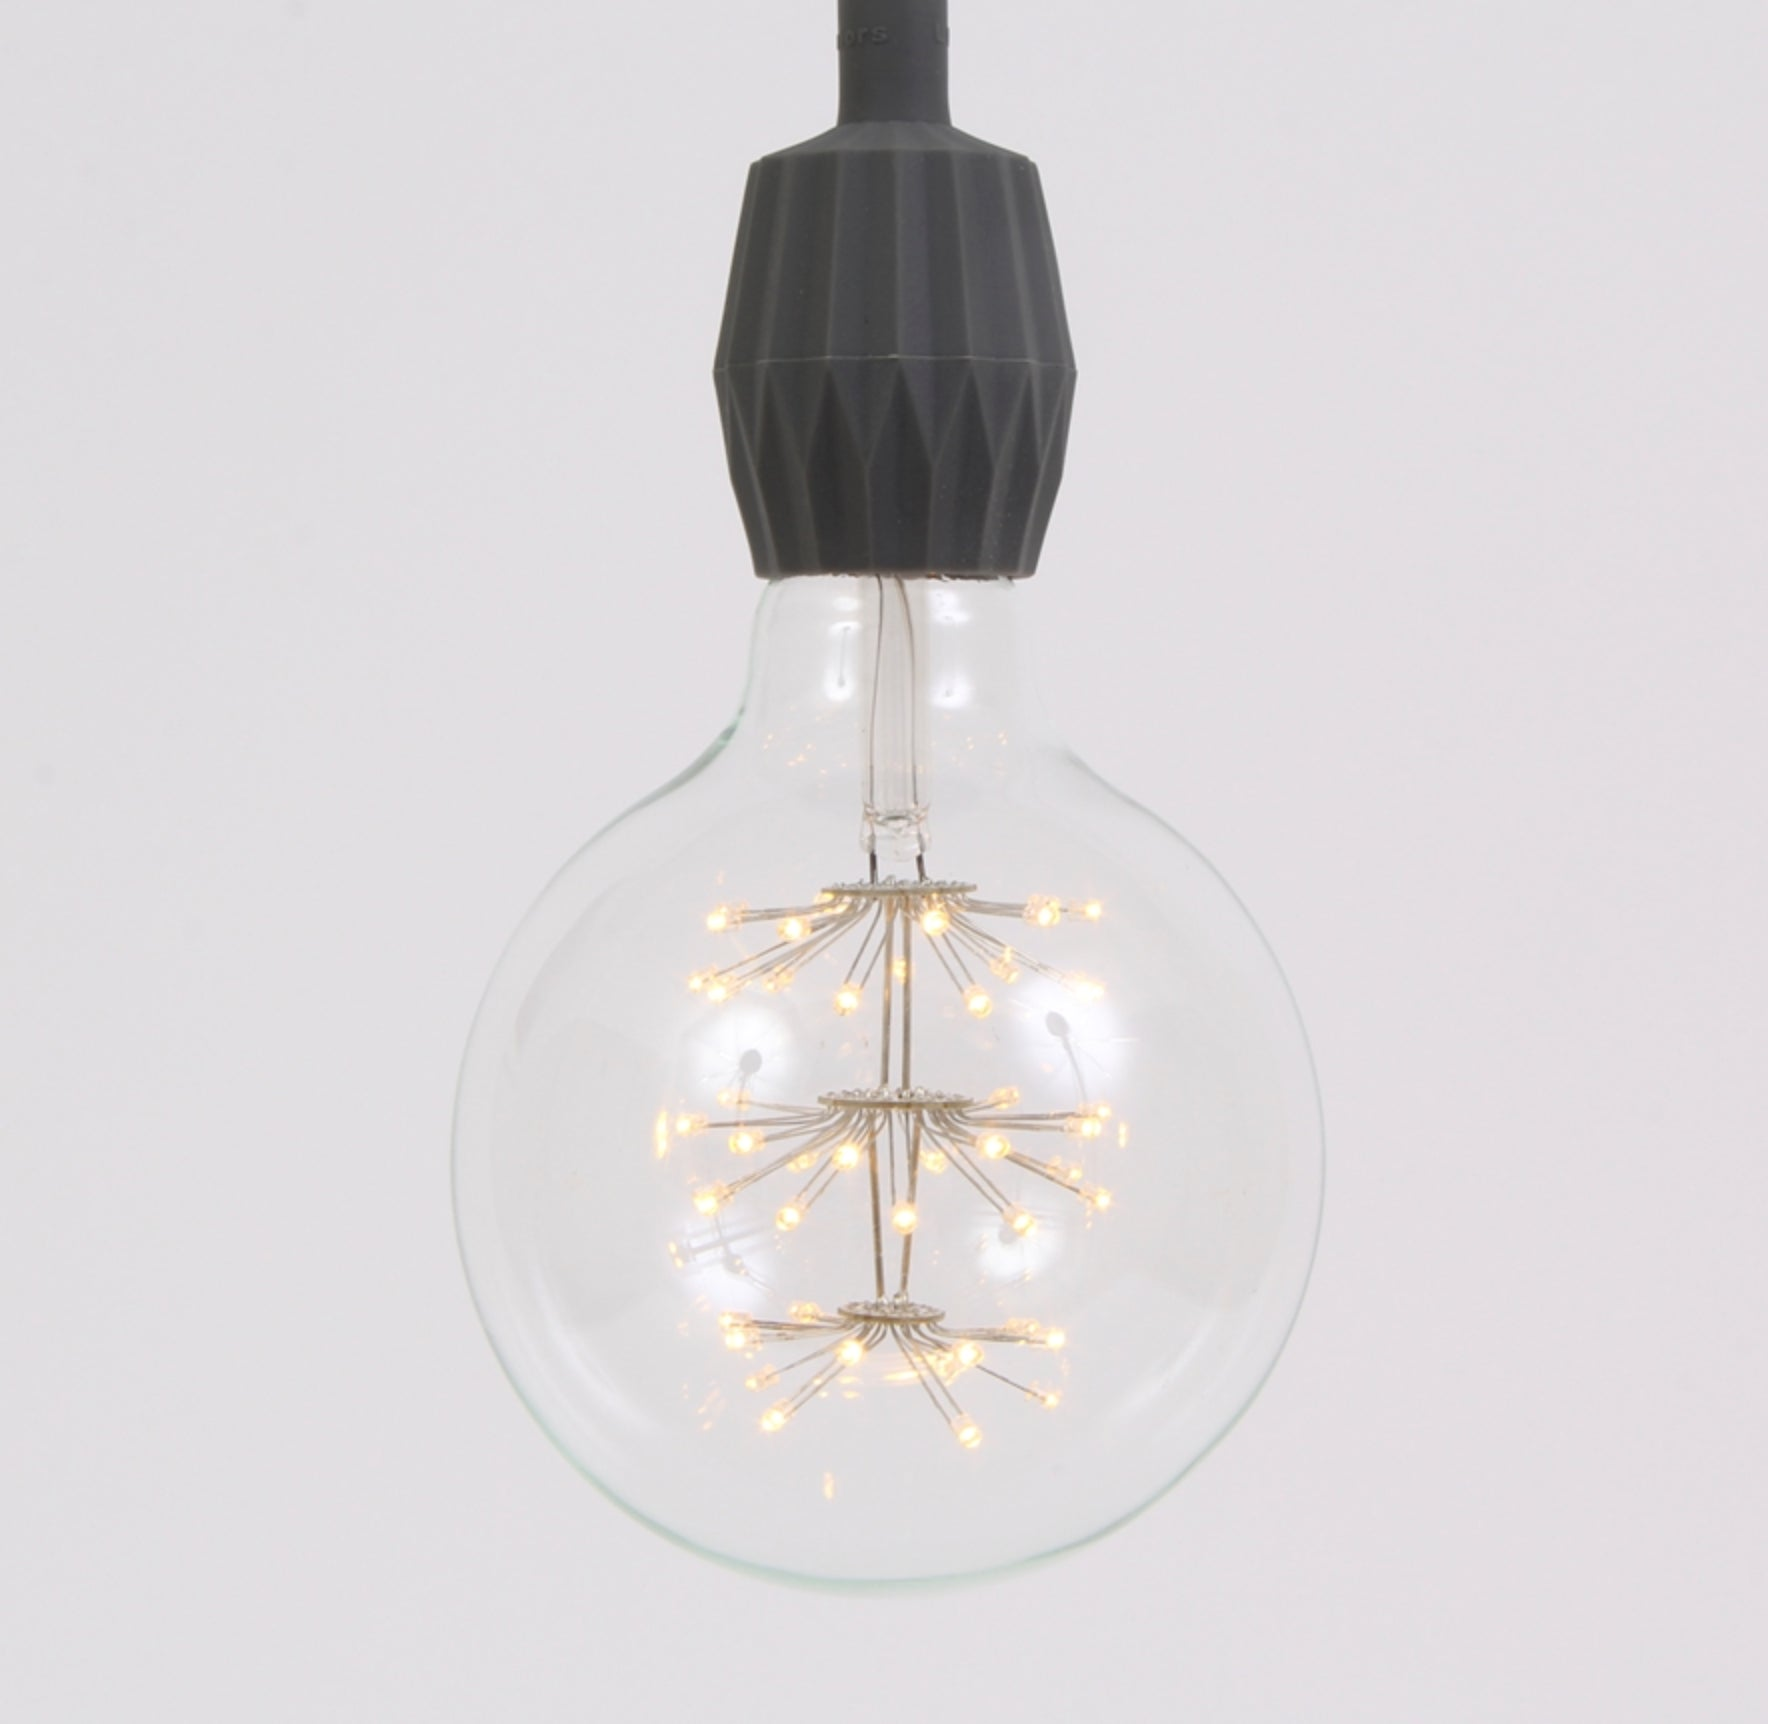 Decorative Hatstraw Lightbulb  Ø125